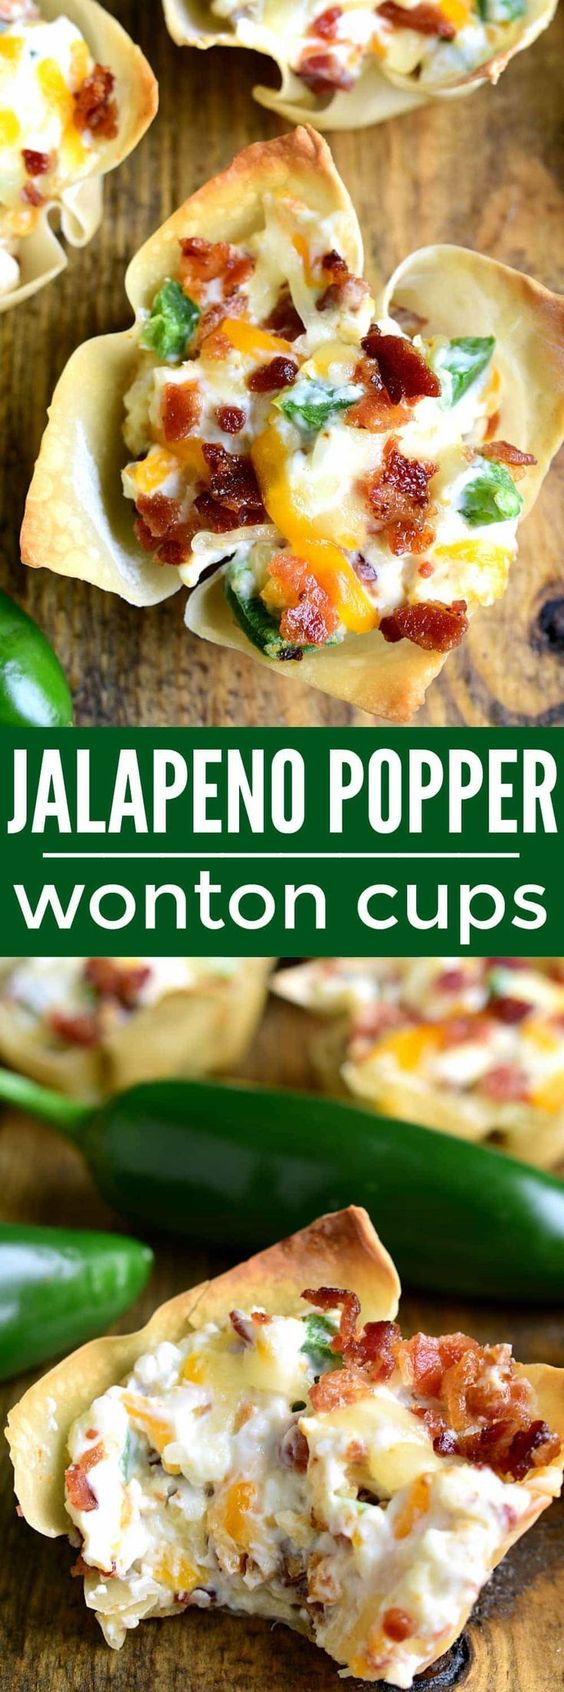 Quick Recipes and Tricks for Making After Workout and After School Snack Jalapeno Popper Wonton Cups